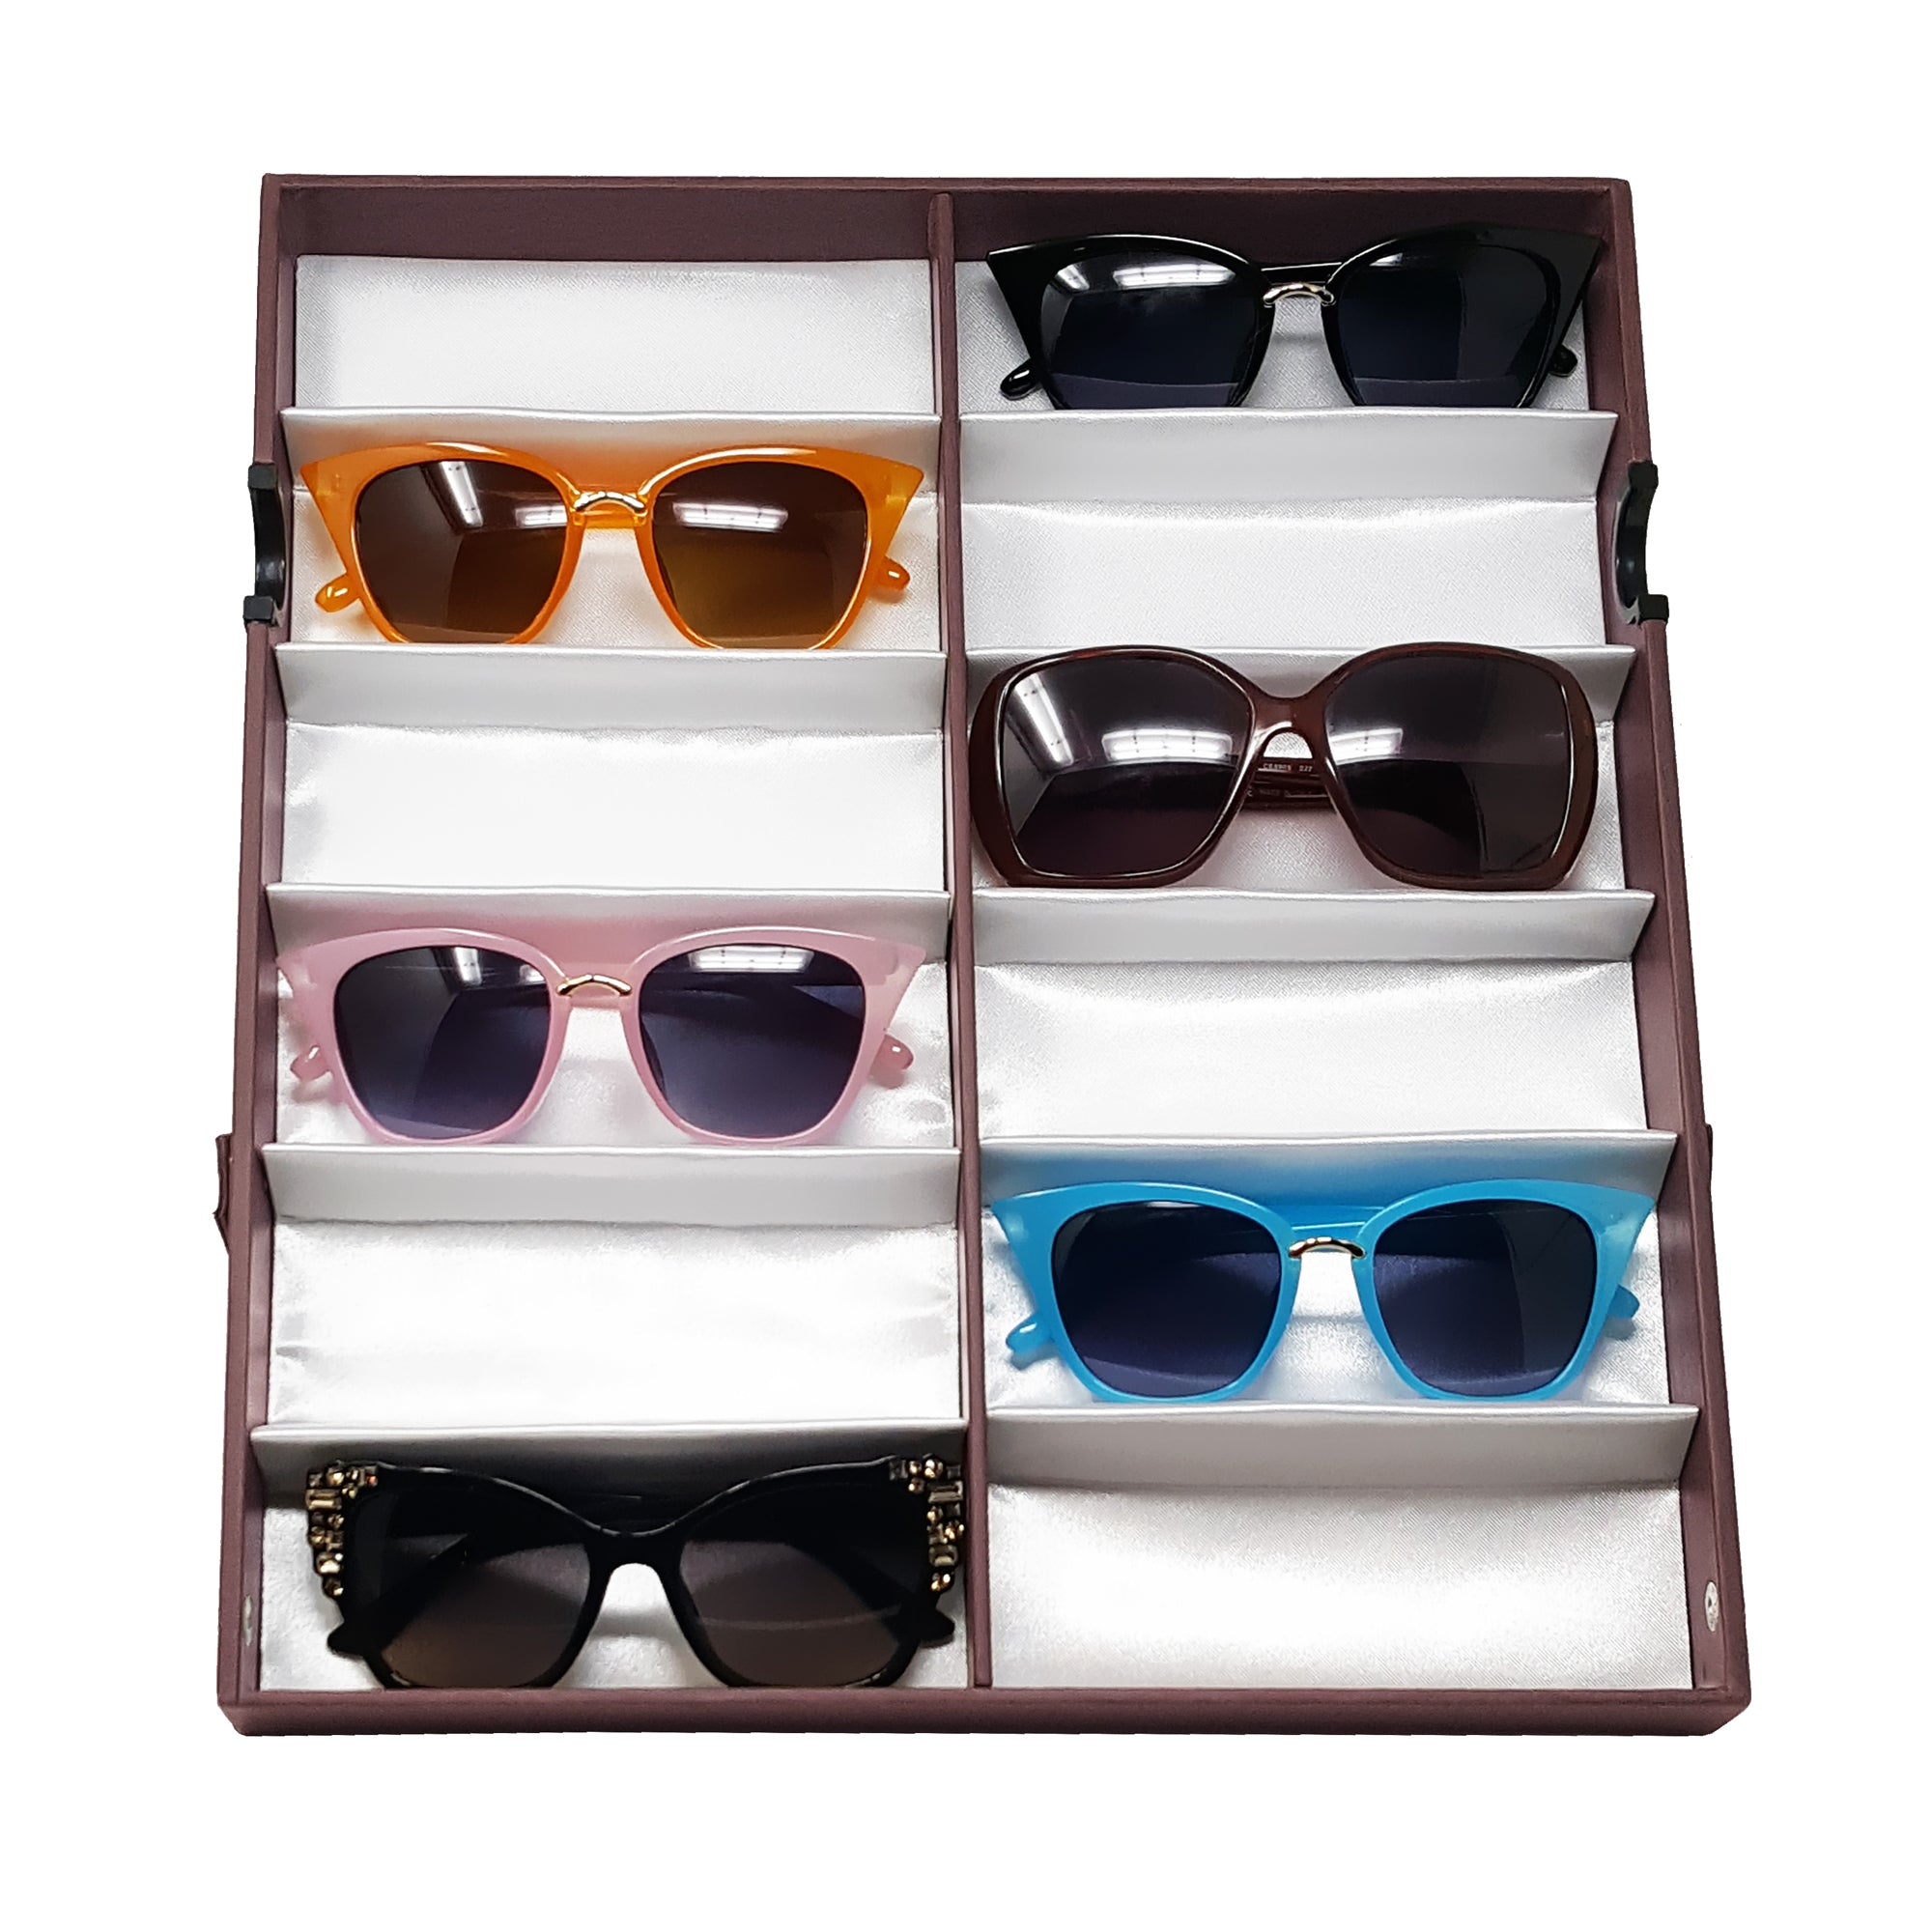 #TR-34VFS-WDBR Eyewear Storage Organizer Box -12 Slots Sunglasses Box Display